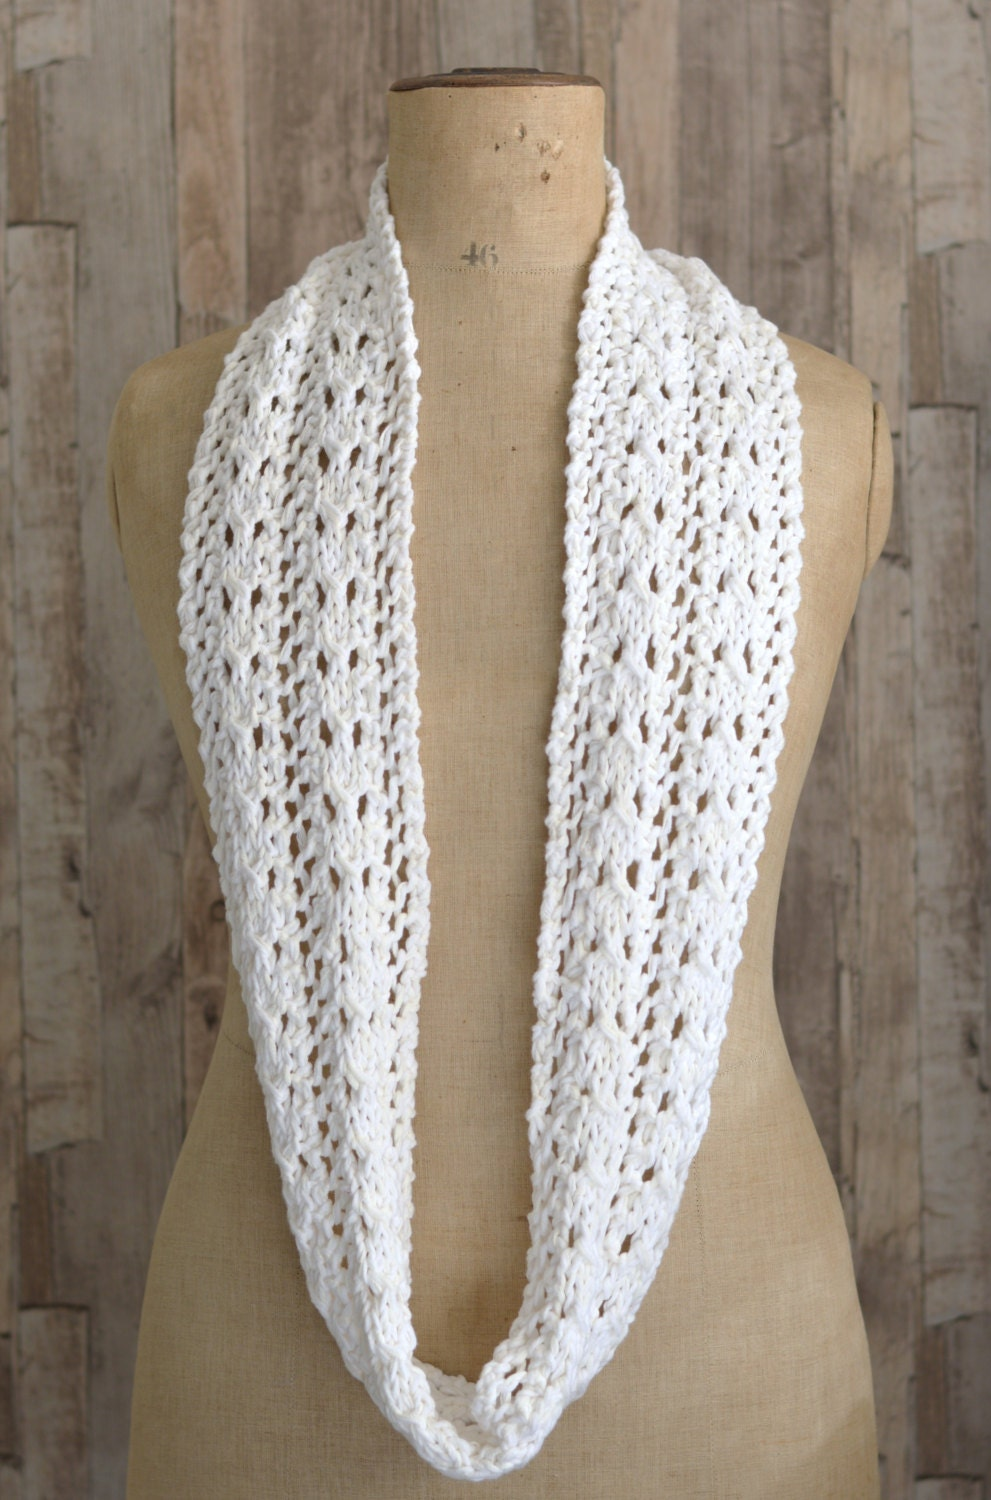 Knitting Pattern Lace Infinity Scarf : KNITTING PATTERN Simple Lace Scarf easy Knit Infinity Scarf